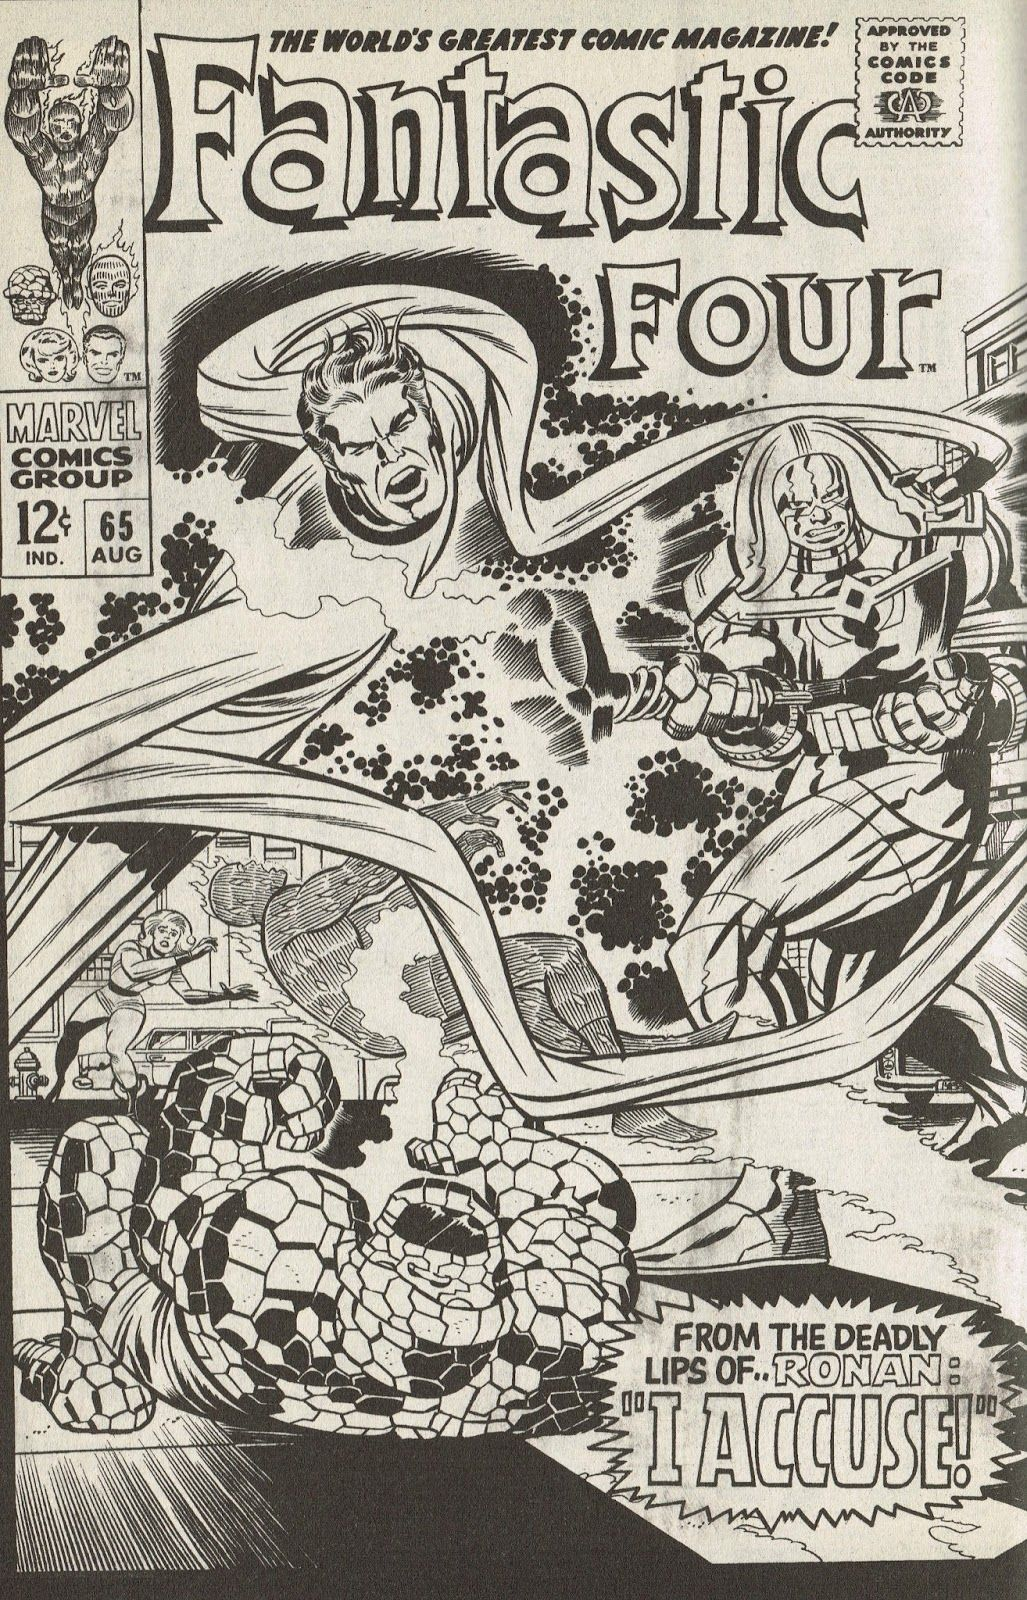 Cap'n's Comics: Two Covers For Fantastic Four #65 by Jack Kirby